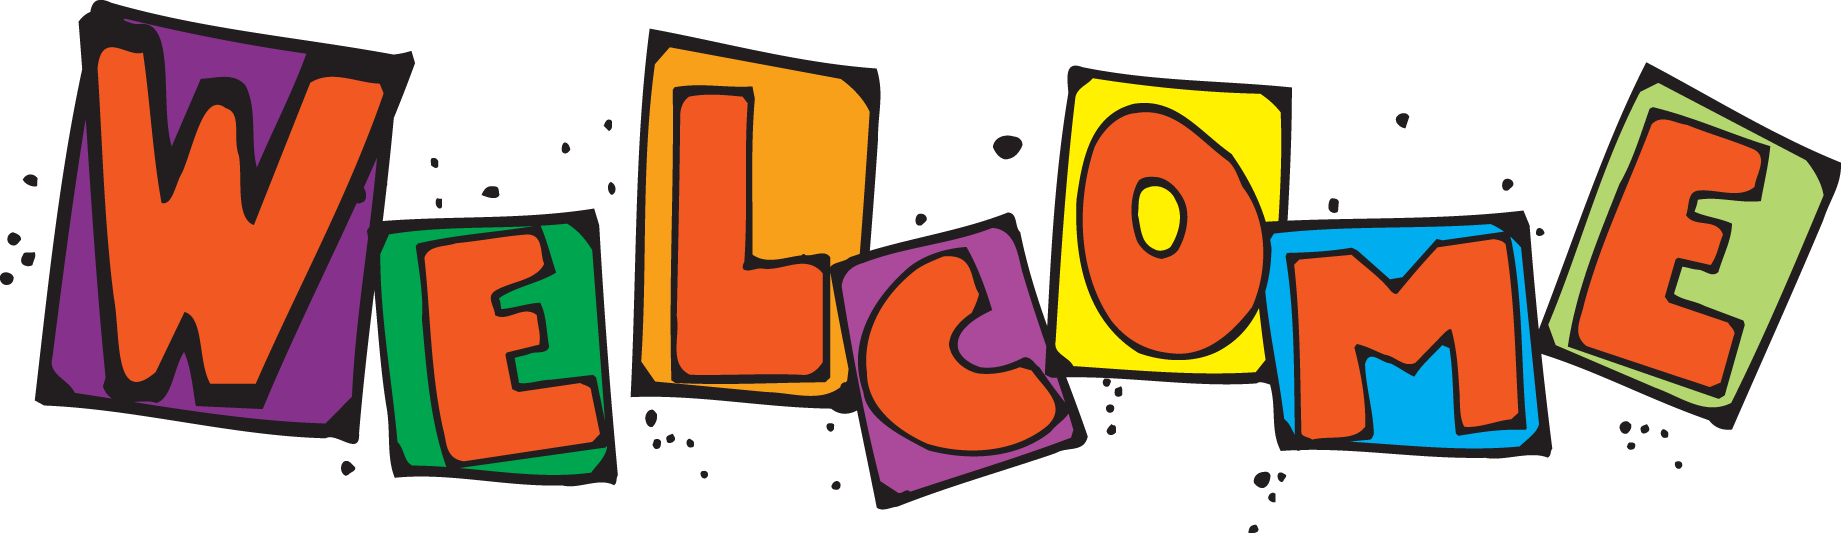 Free Your Welcome Cliparts, Download Free Clip Art, Free Clip Art on.